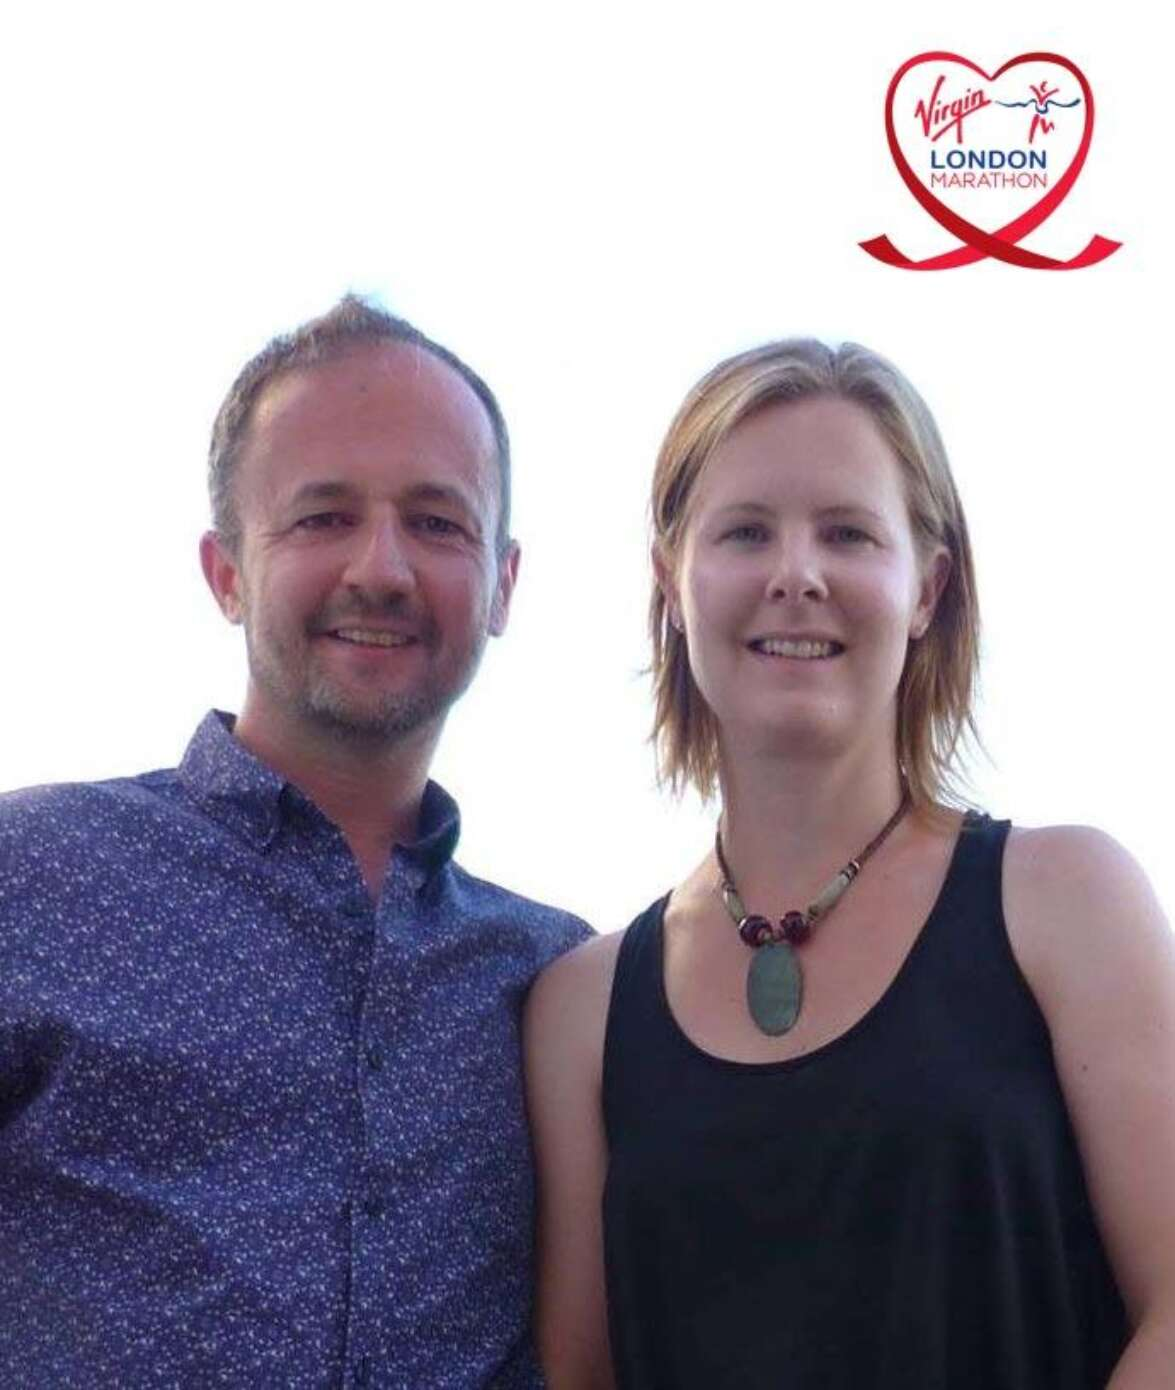 Our design director Ian Payne and his wife Samantha, sign up for the London Marathon